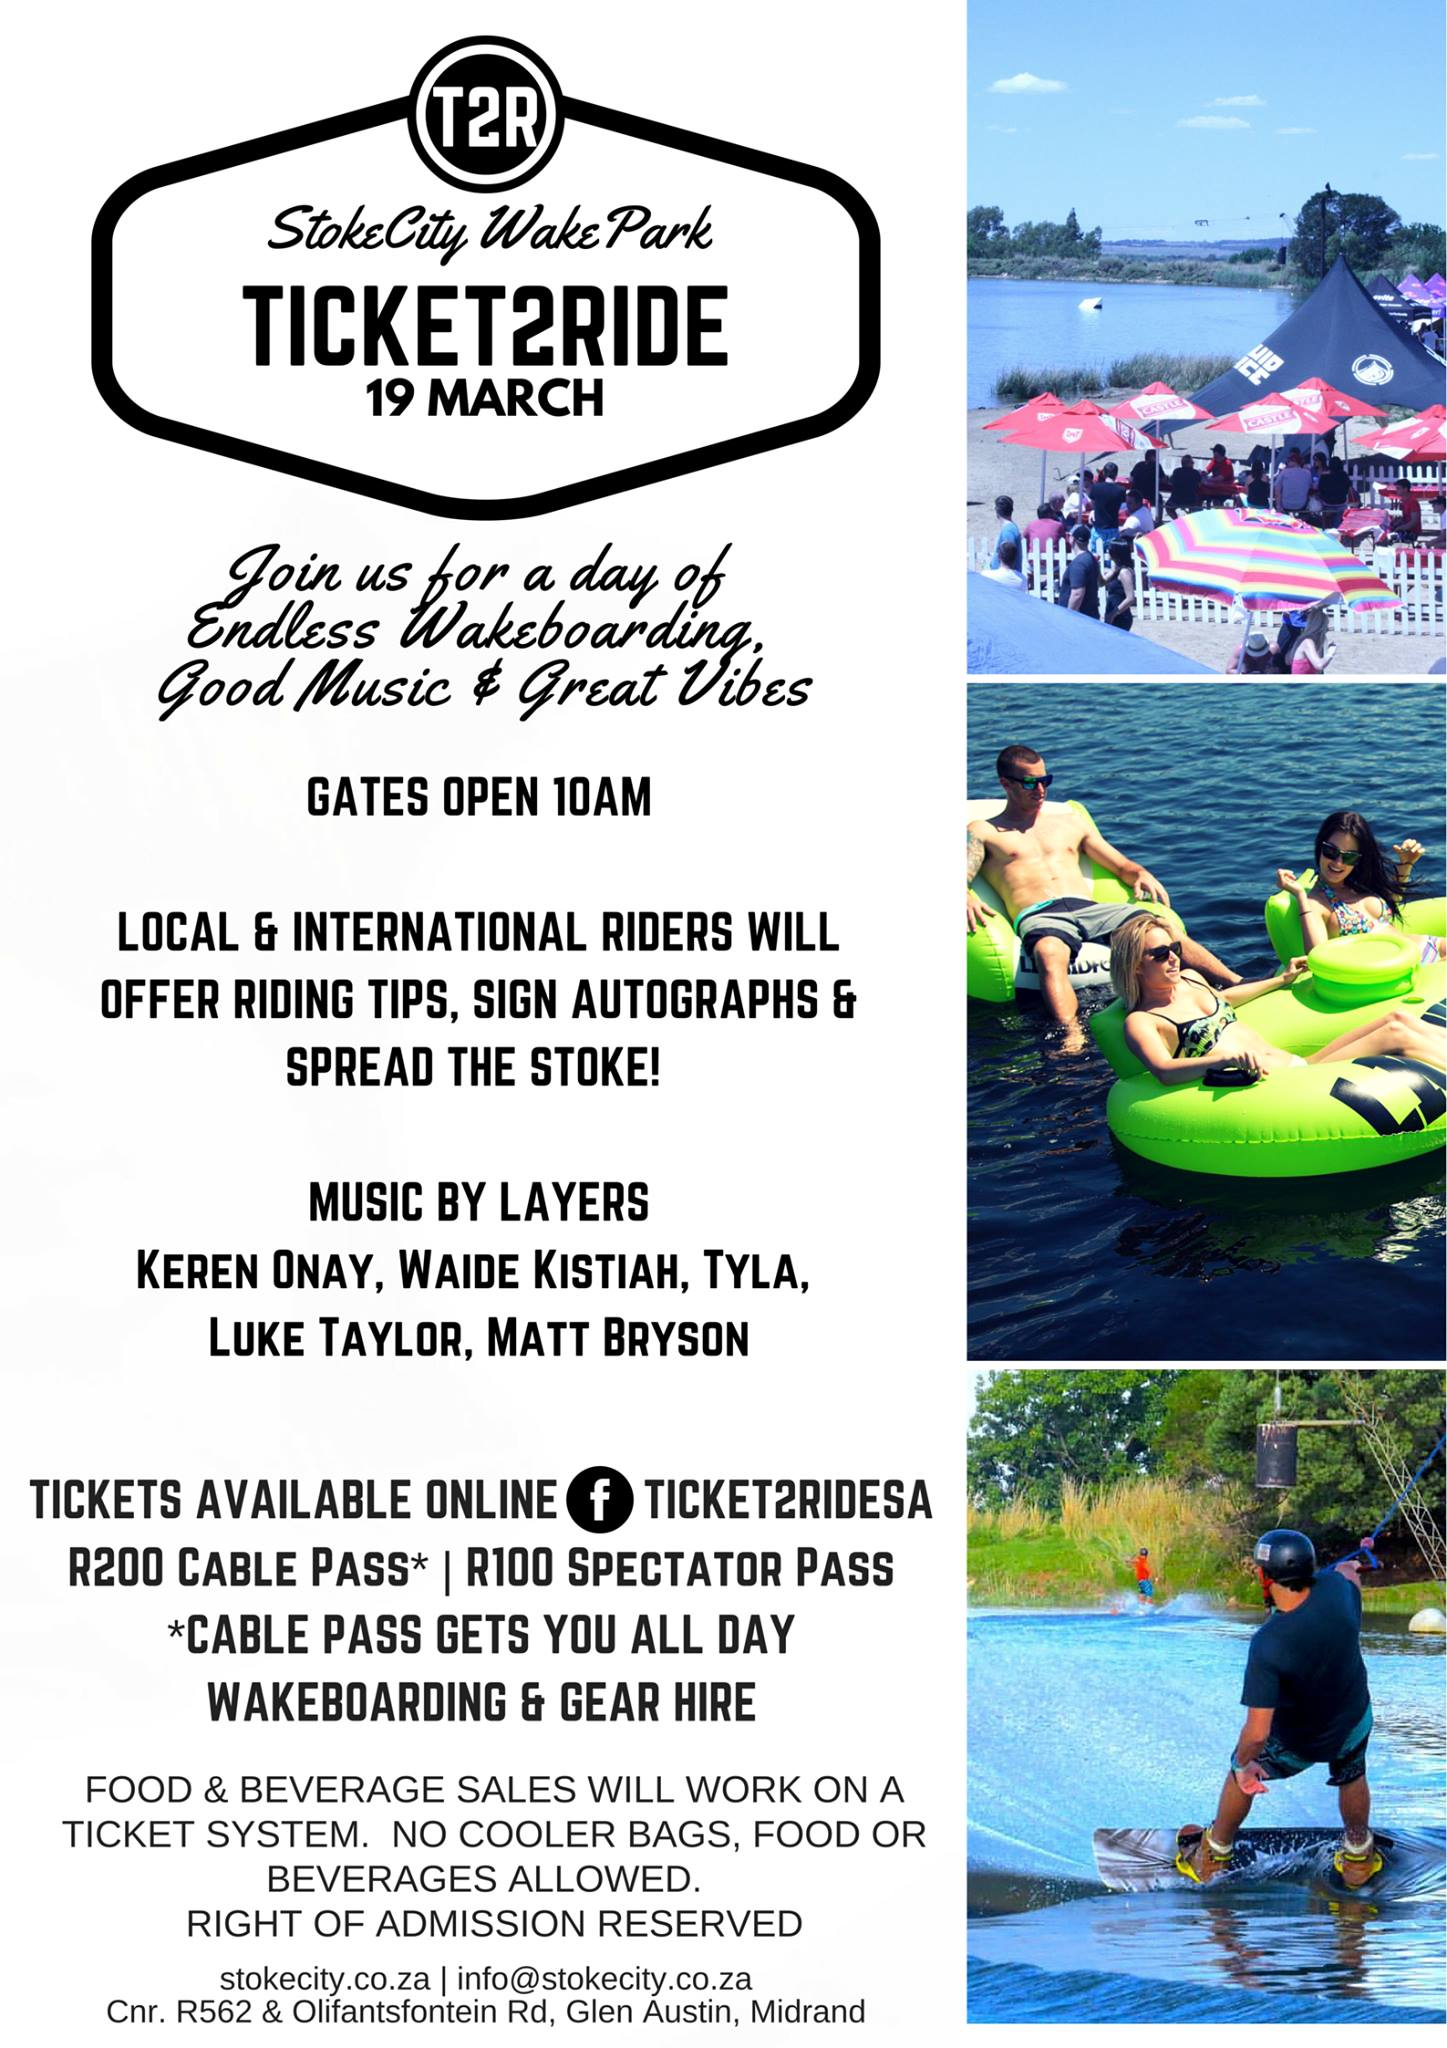 Ticket2ride 2016 Wakeboarding Lw Mag